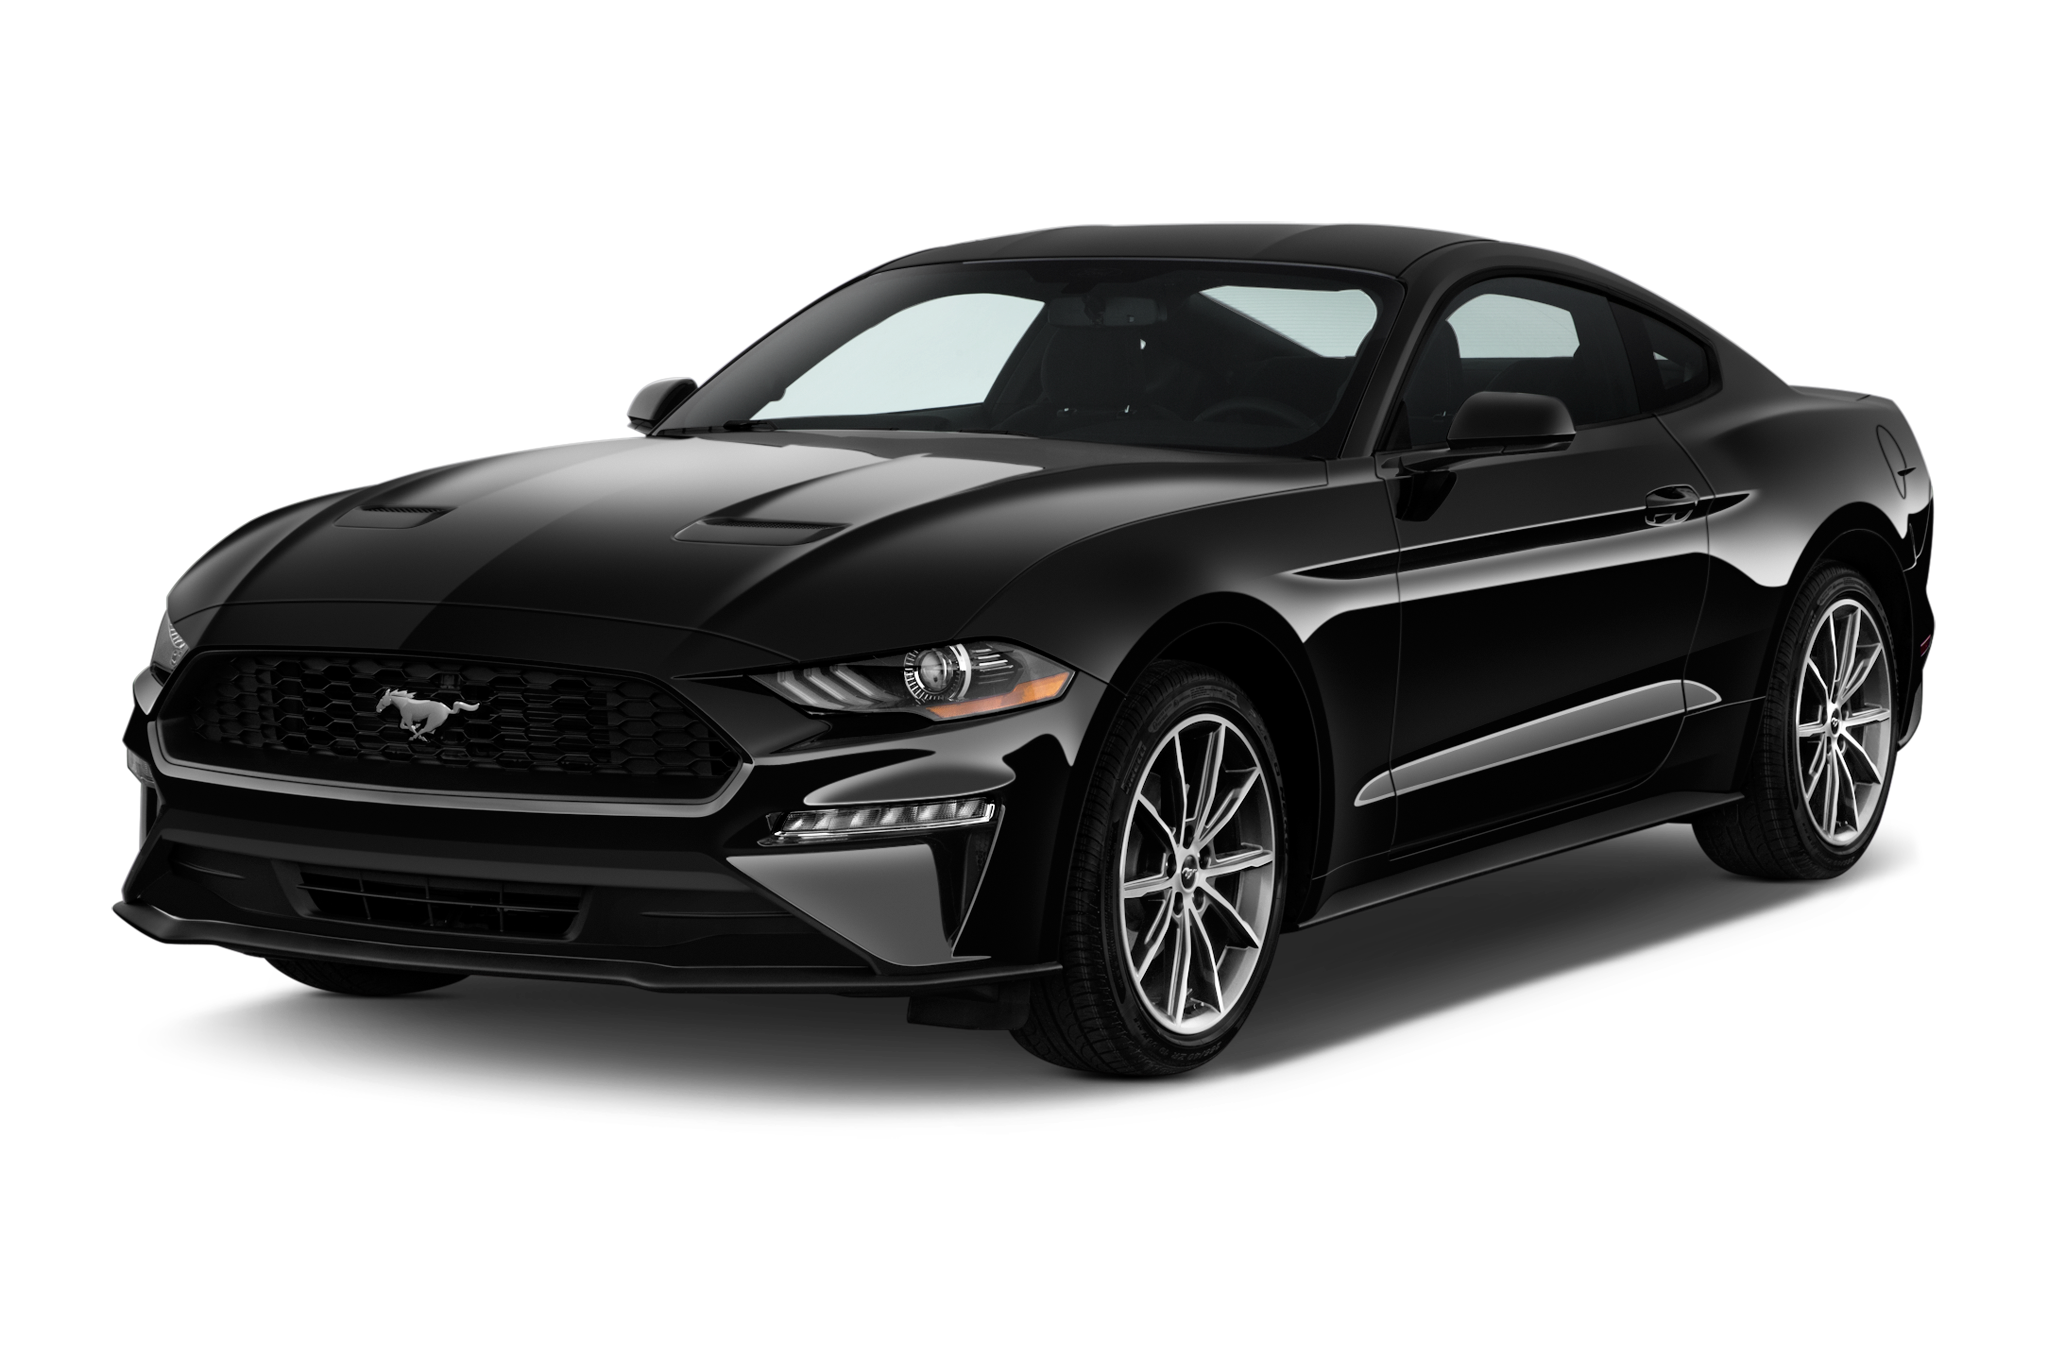 2019 ford mustang ecoboost coupe specs and features msn. Black Bedroom Furniture Sets. Home Design Ideas